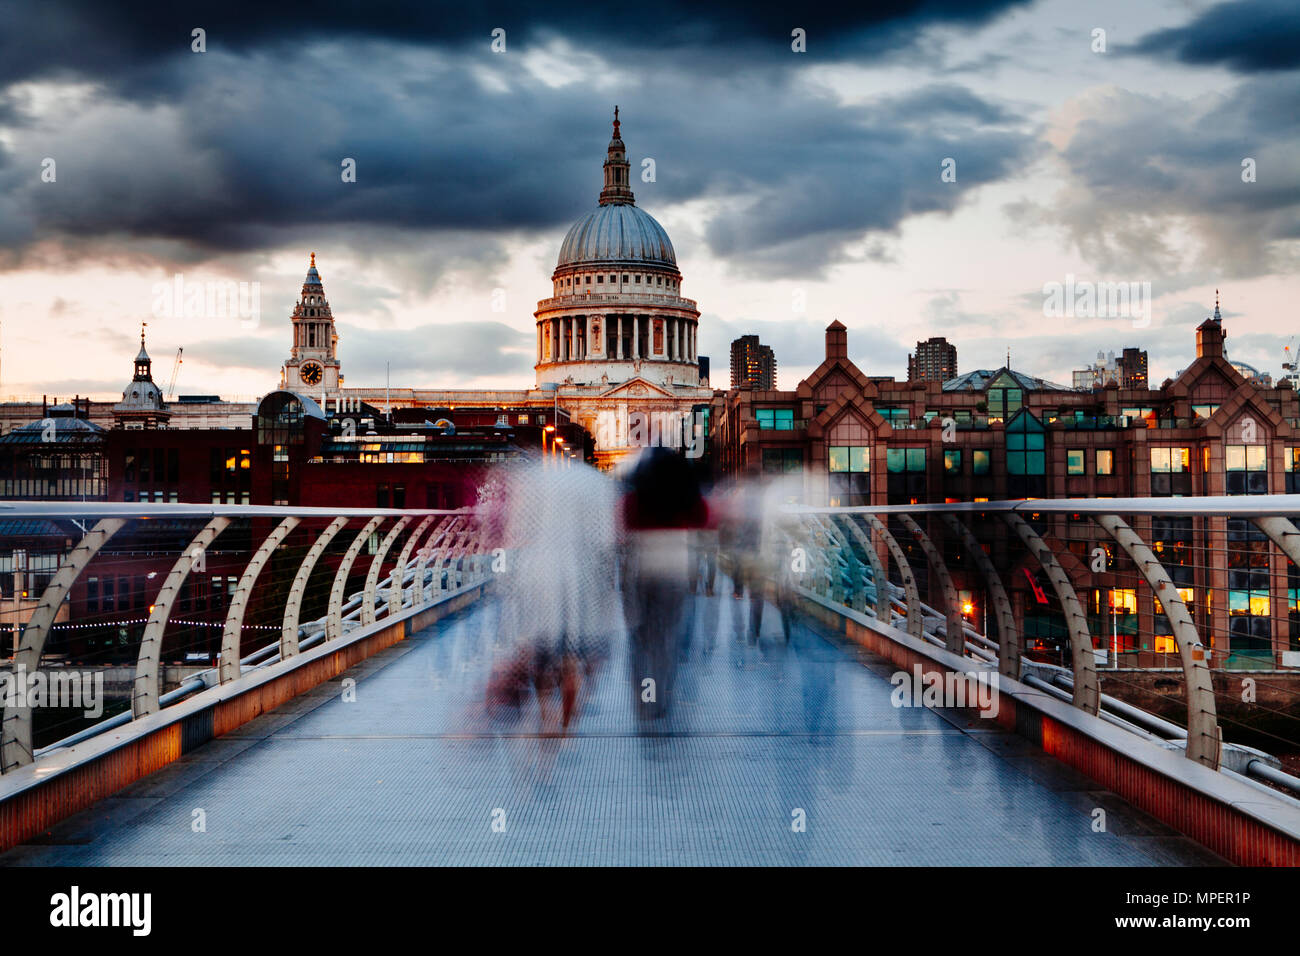 Early evening on London's Millennium Bridge with people crossing in motion blur and a view of St Pauls Cathedral. - Stock Image